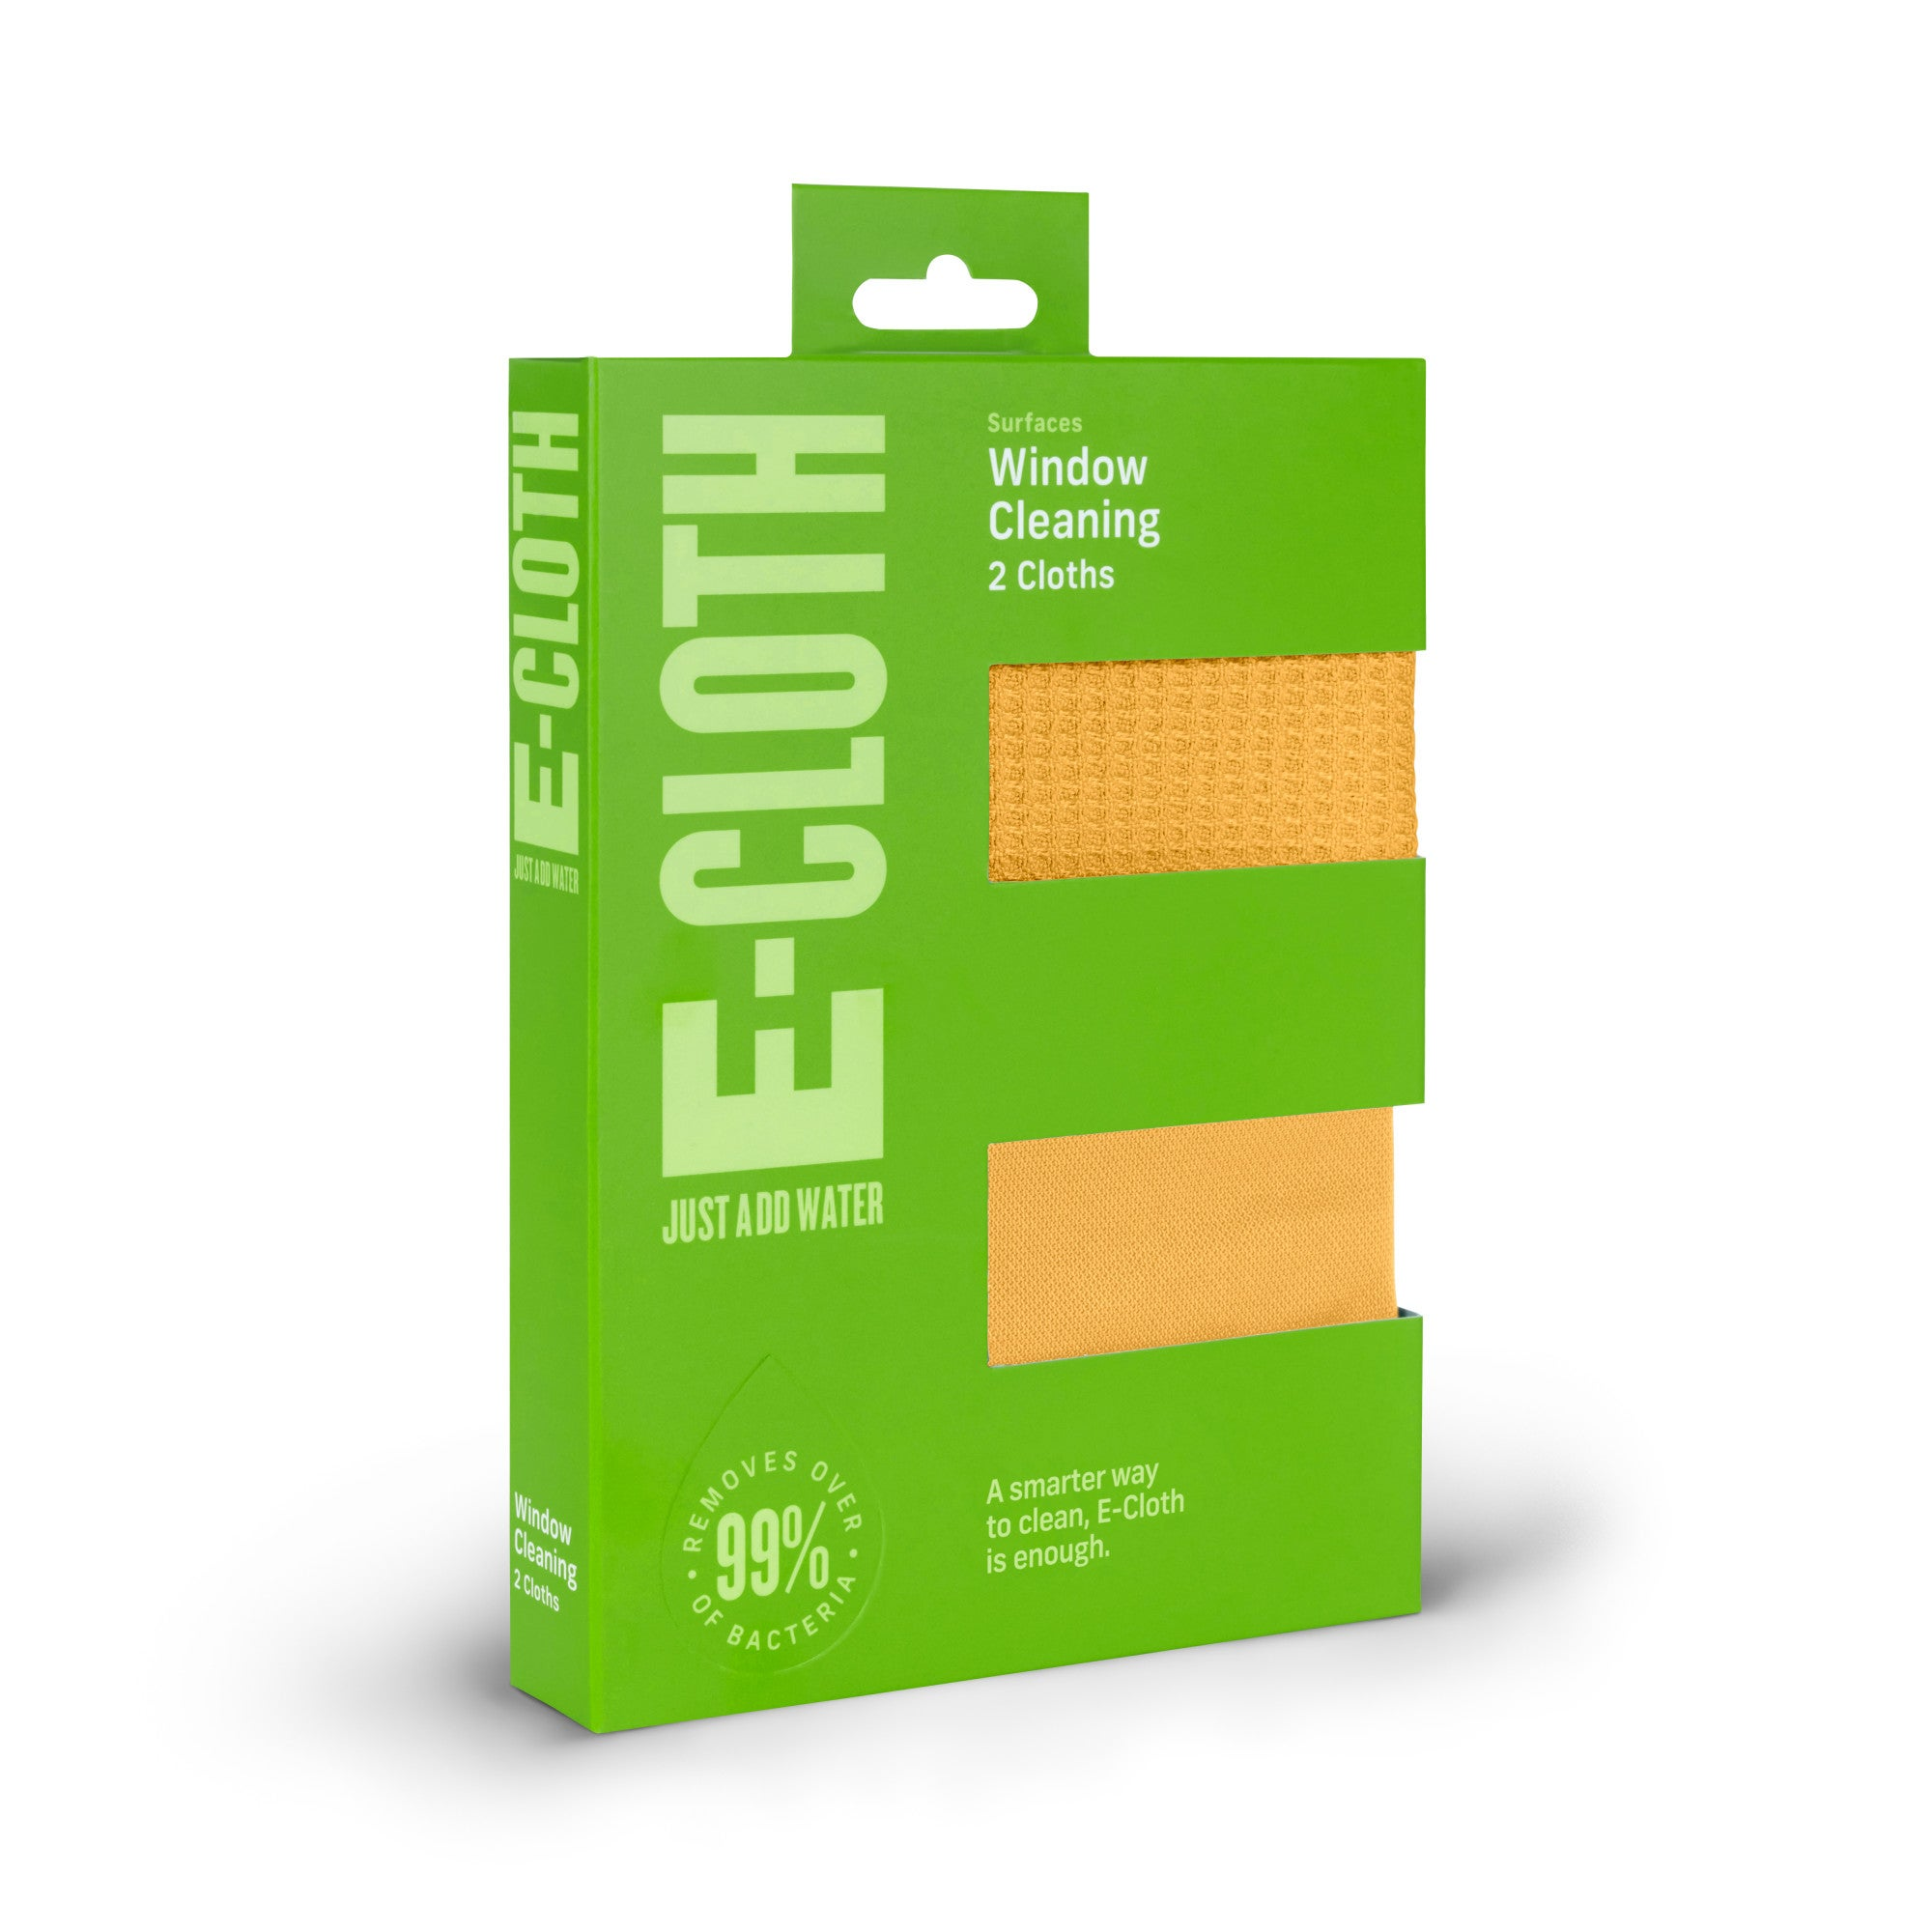 E-Cloth Window Cleaning Pack